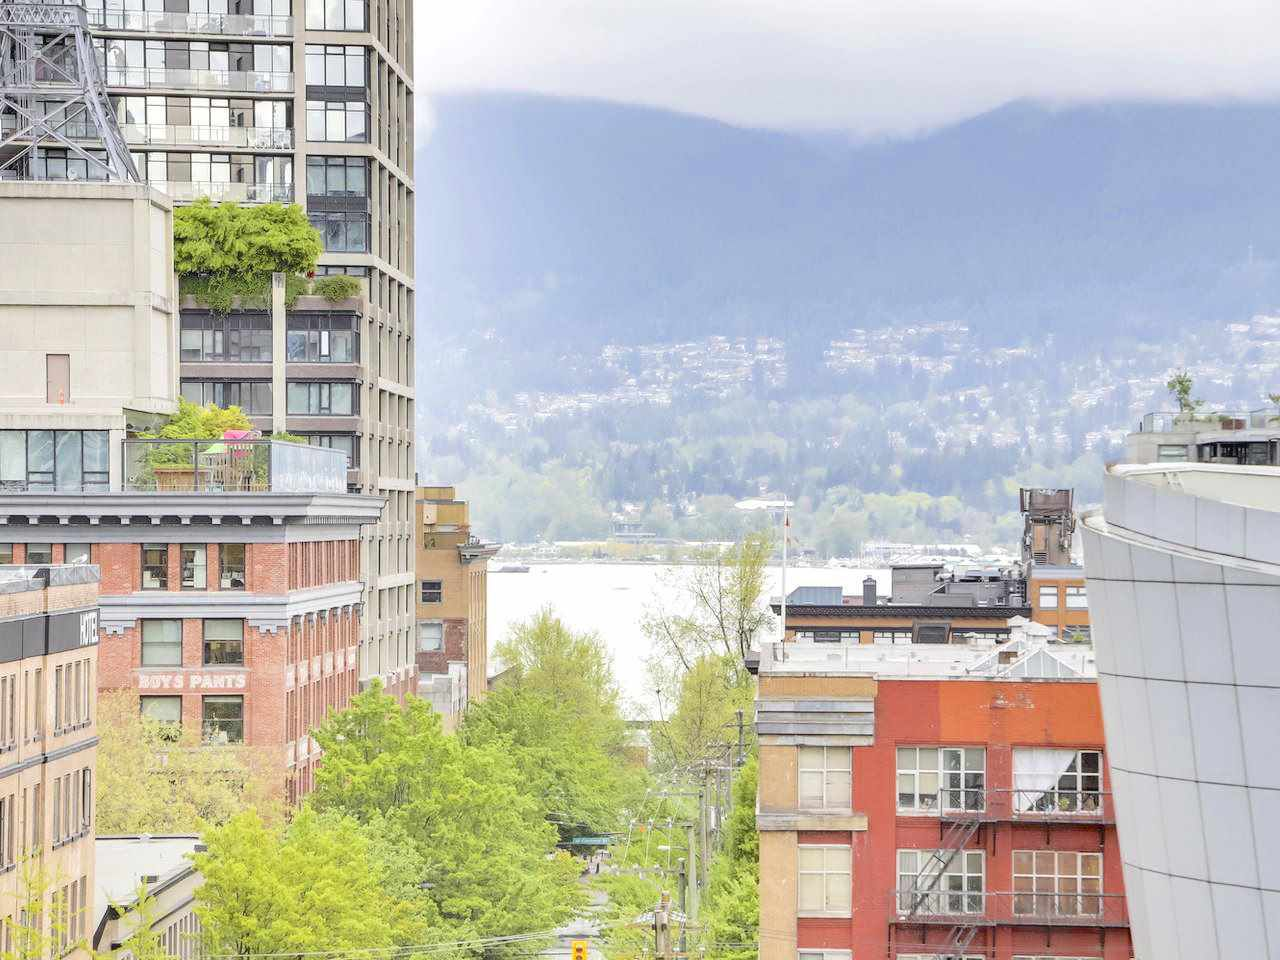 """Main Photo: 810 555 ABBOTT Street in Vancouver: Downtown VW Condo for sale in """"PARIS PLACE"""" (Vancouver West)  : MLS®# R2265422"""